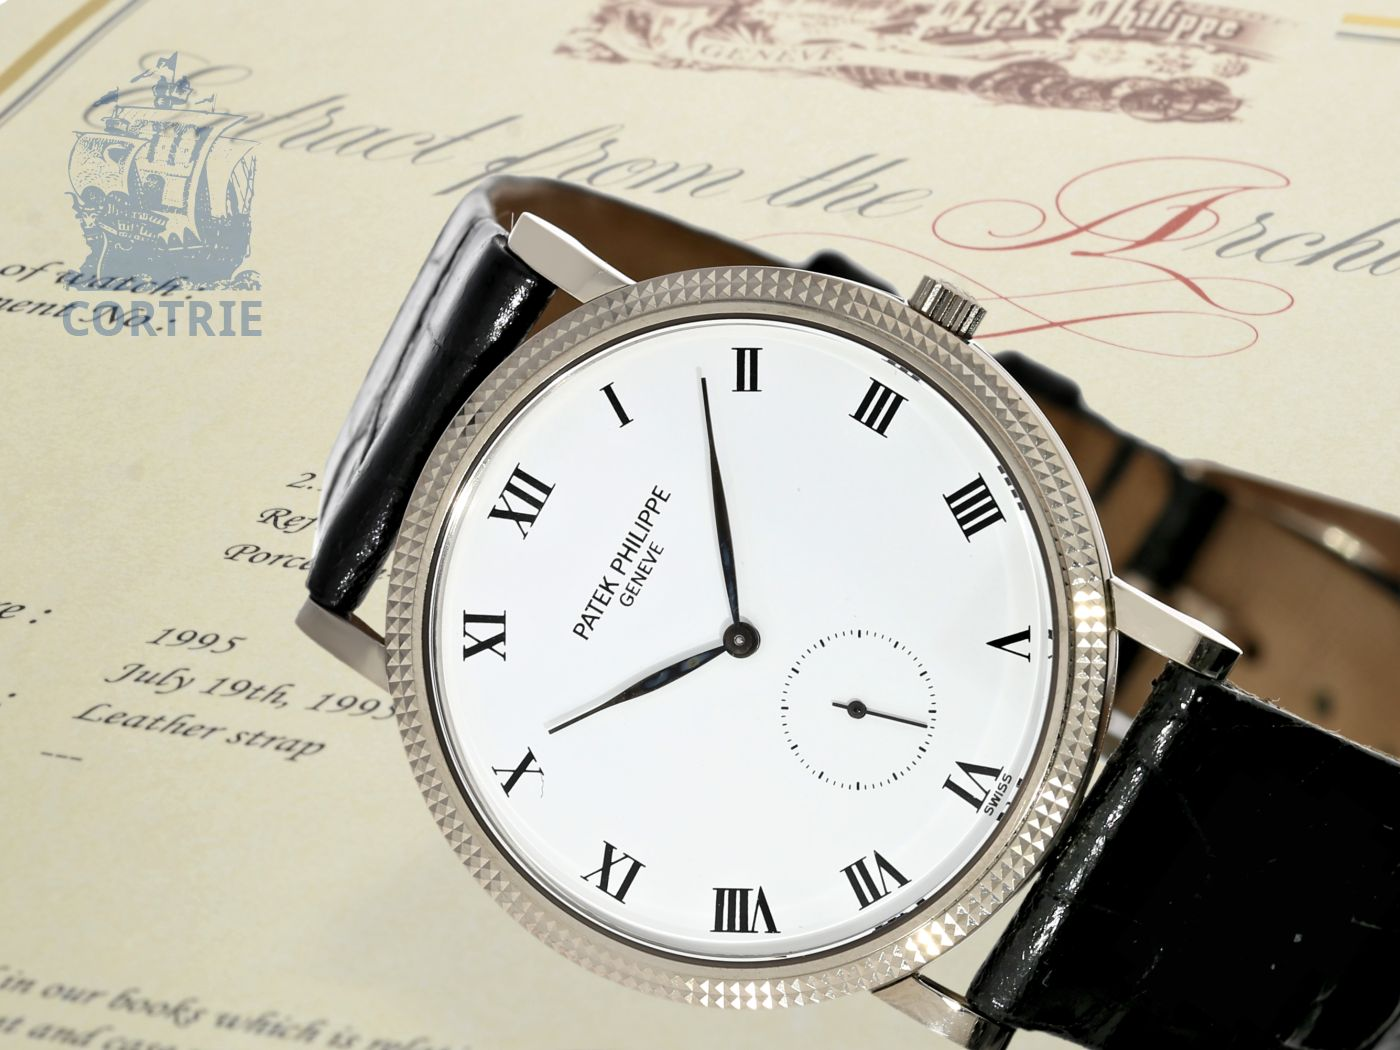 "Wristwatch: very fine and rare Patek Philippe Calatrava ""Clous de Paris - Porcelain"" Ref.3919, white gold, with Patek Philippe certificate-"